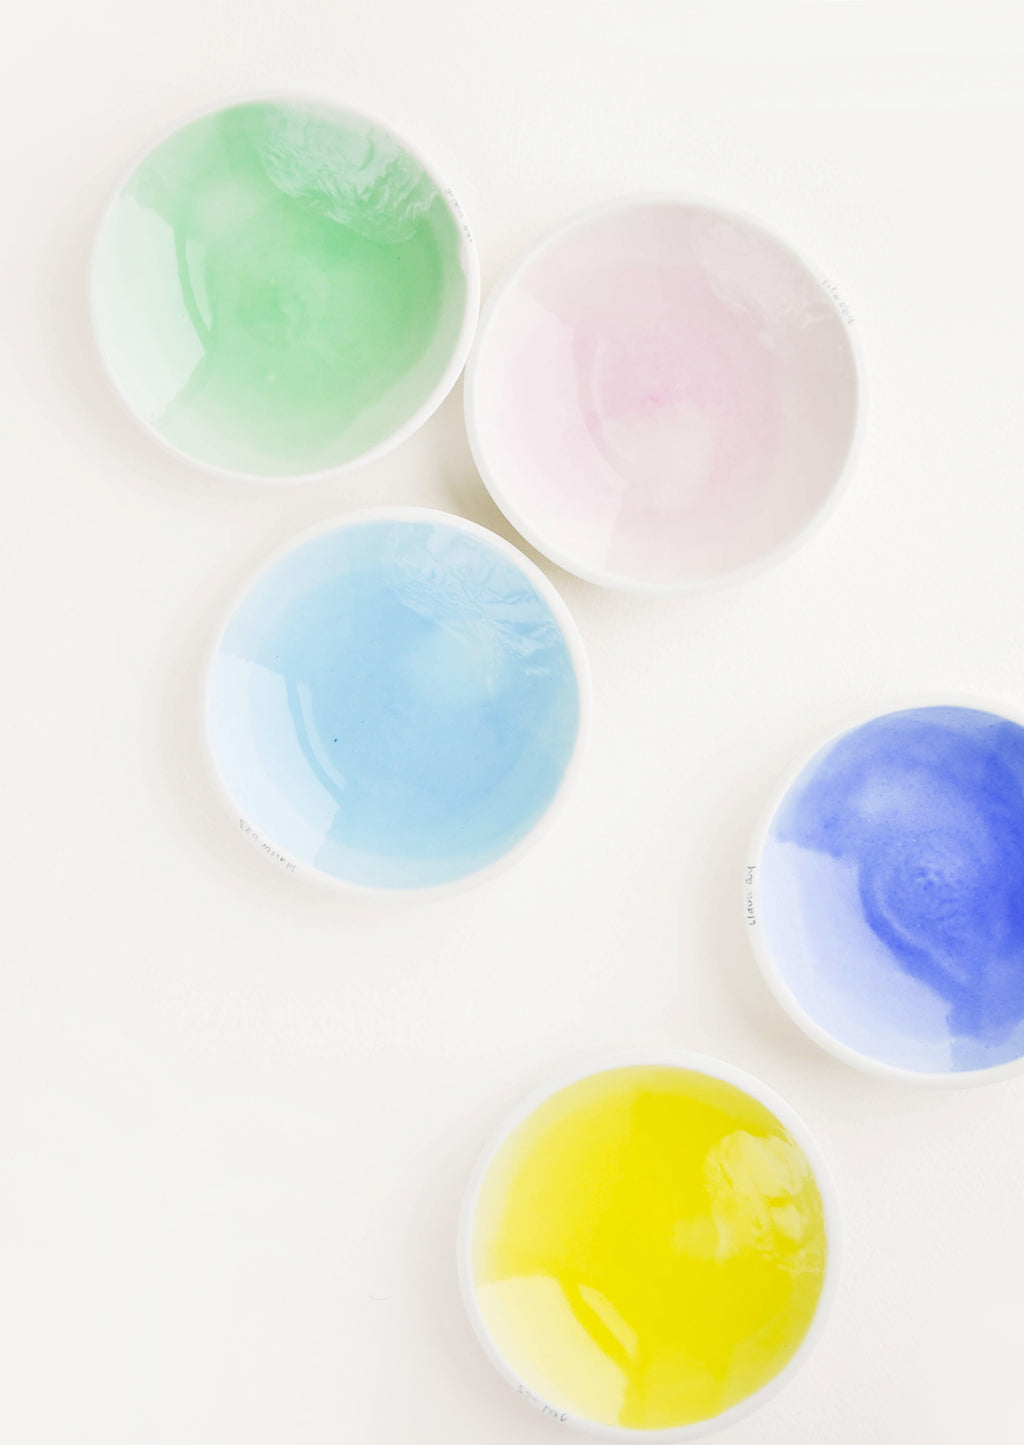 Small: Five shallow porcelain dishes in light blue, blue, pale pink, green, and yellow with shiny finishes and matte white rims.